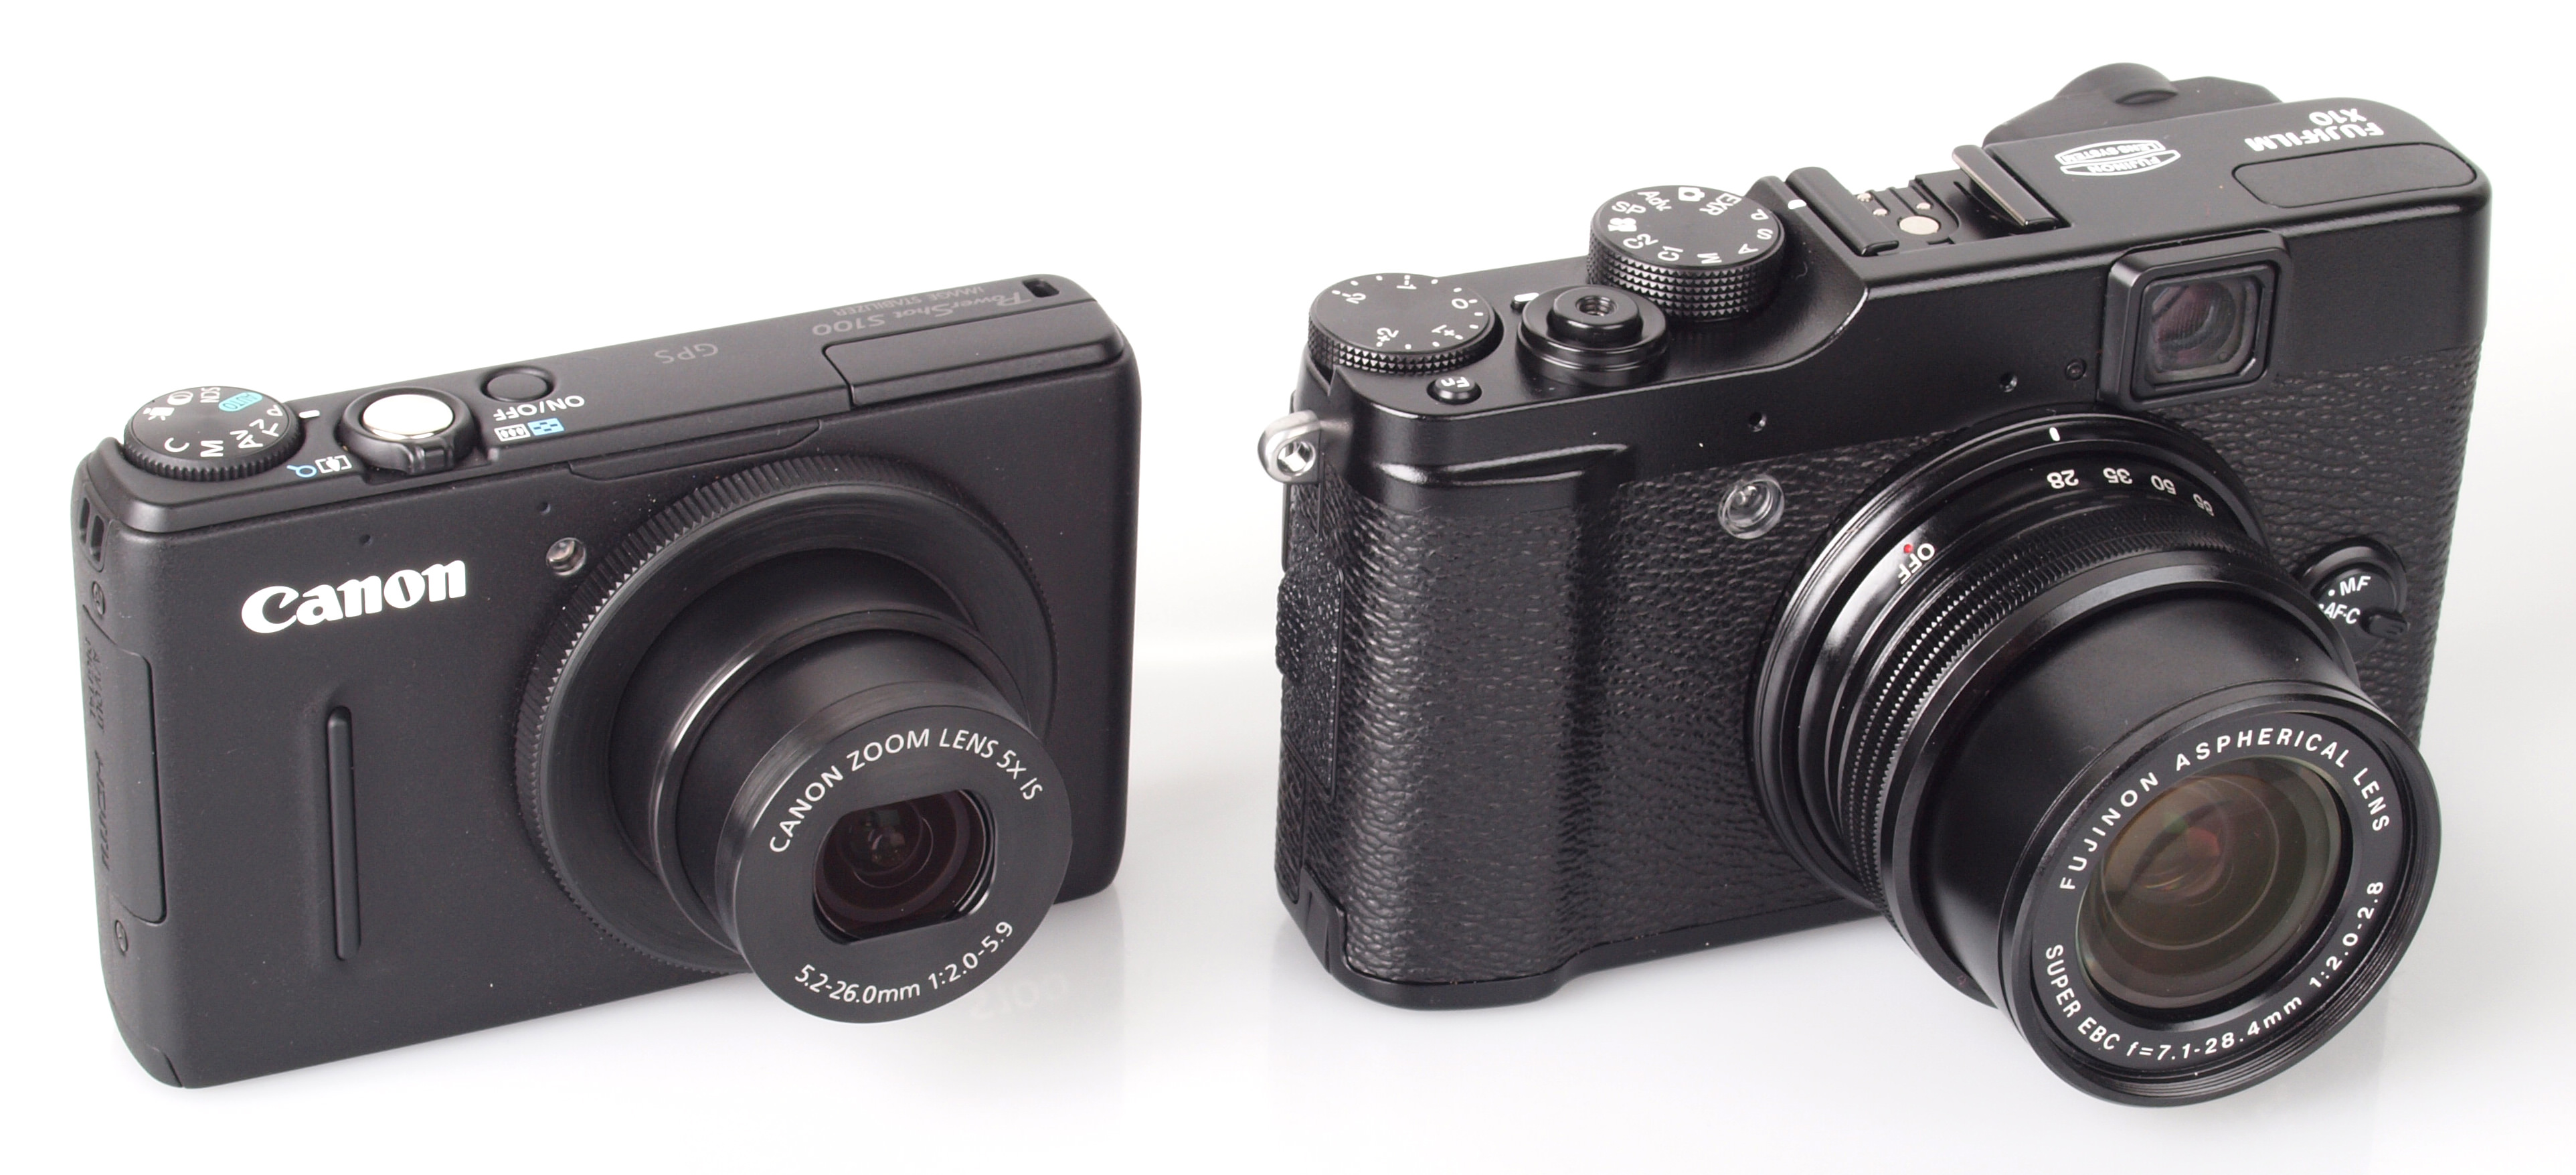 canon powershot s100 vs fujifilm finepix x10 comparison review. Black Bedroom Furniture Sets. Home Design Ideas